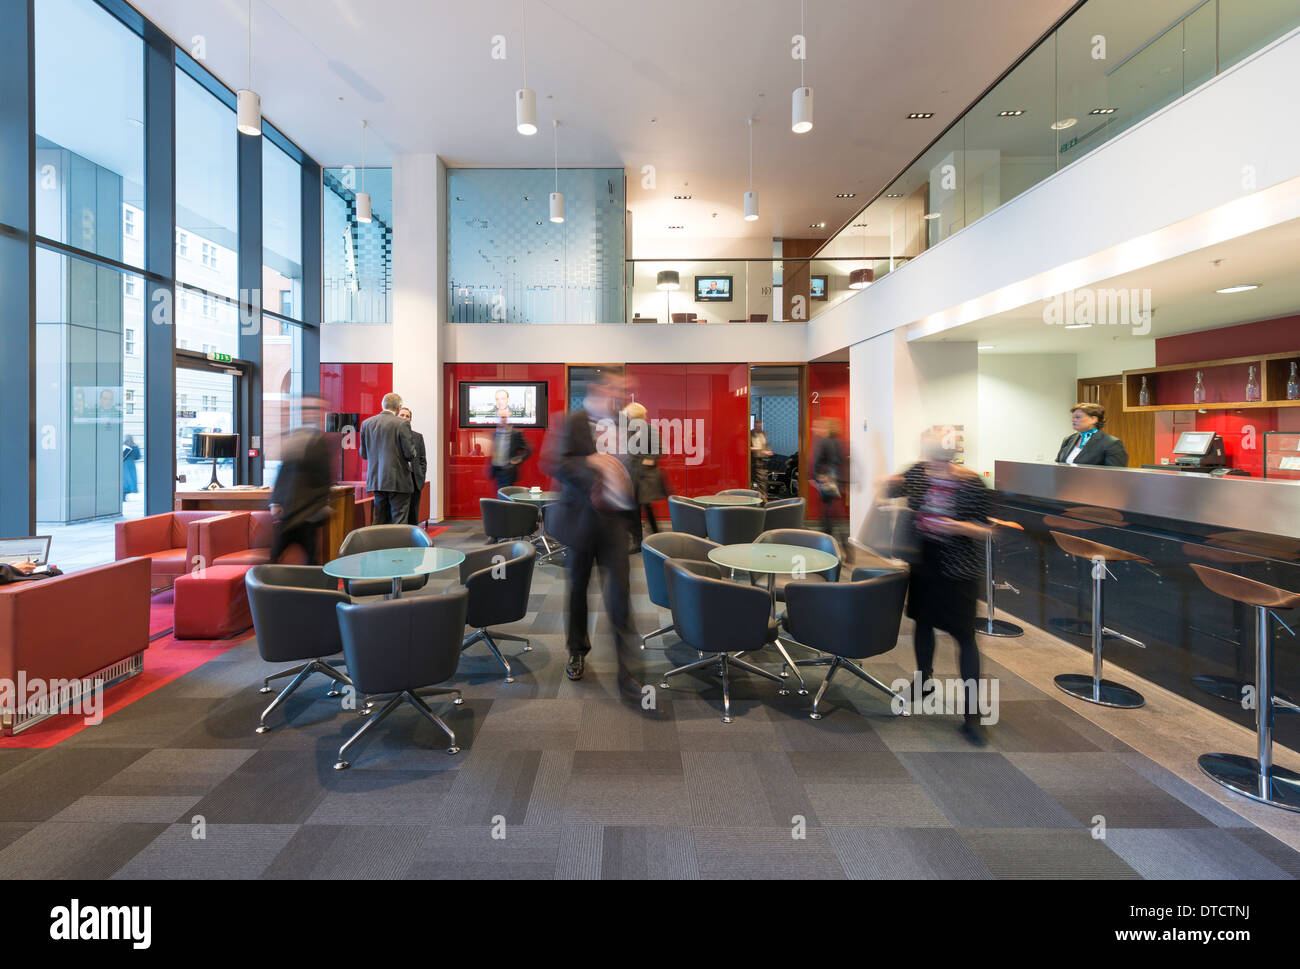 The business lounge at 11 Brindleyplace. - Stock Image